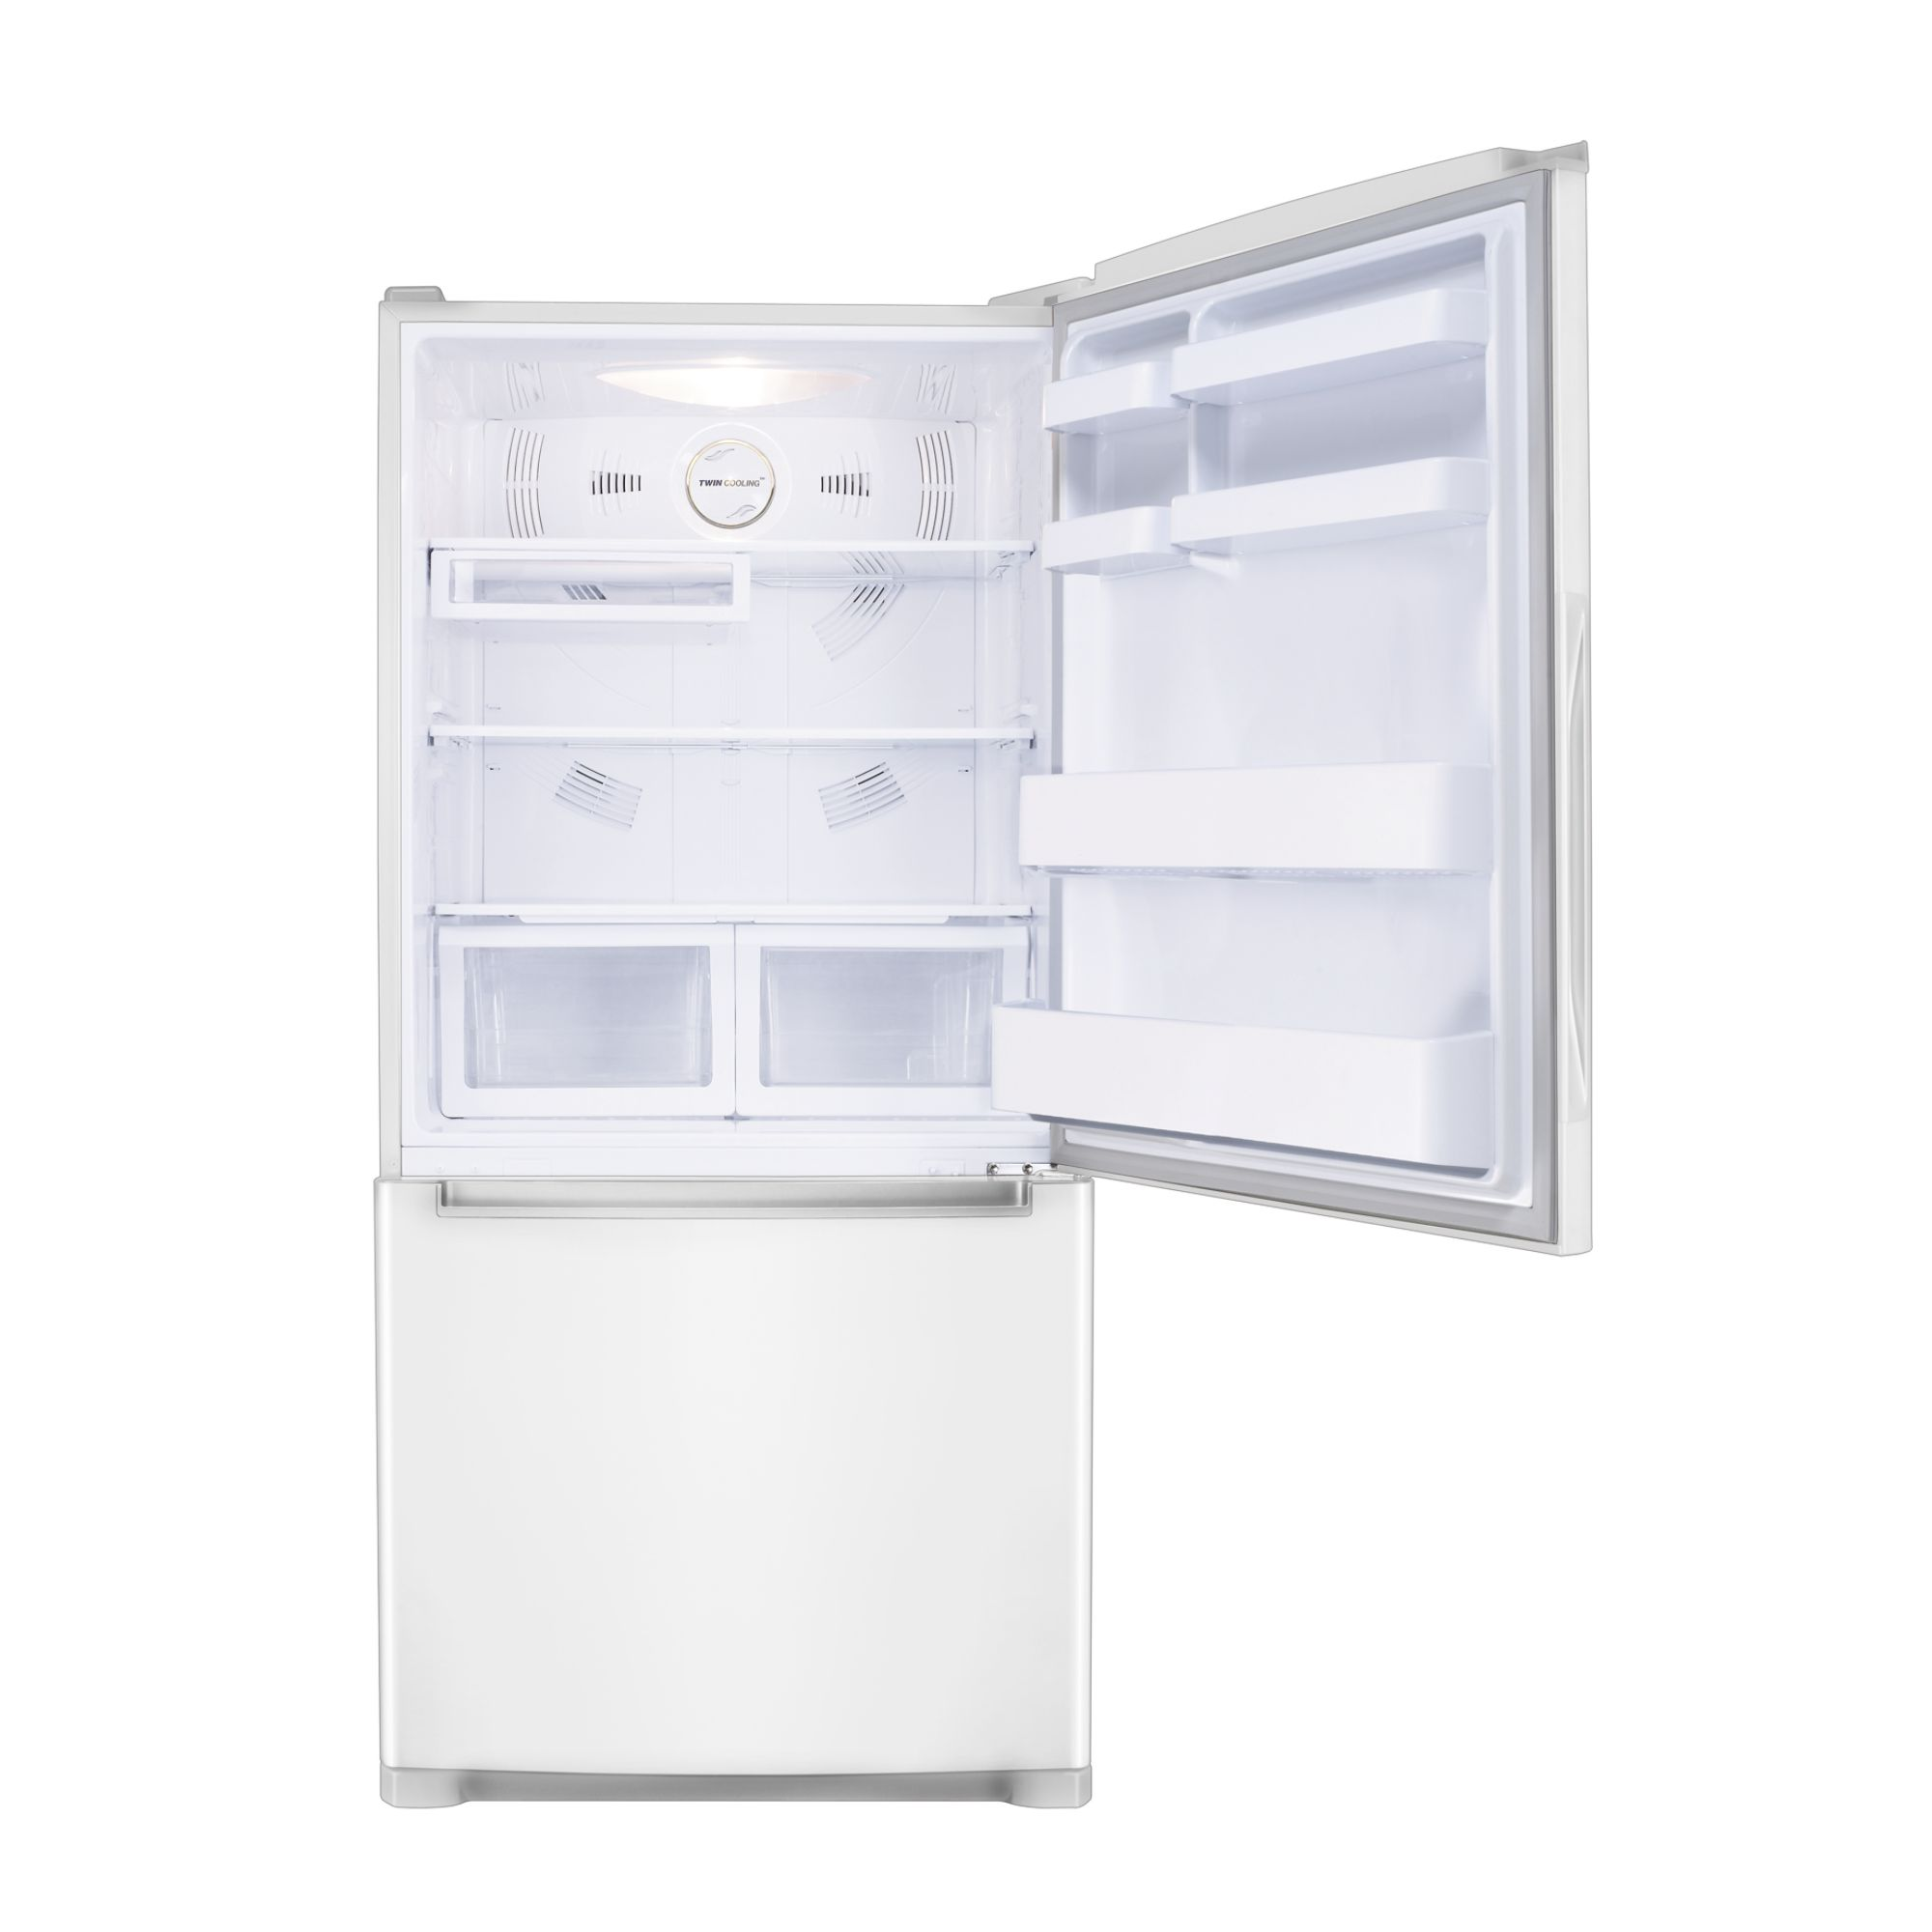 Samsung 18 cu. ft. Bottom Freezer w/ Side Swing Freezer Door - White